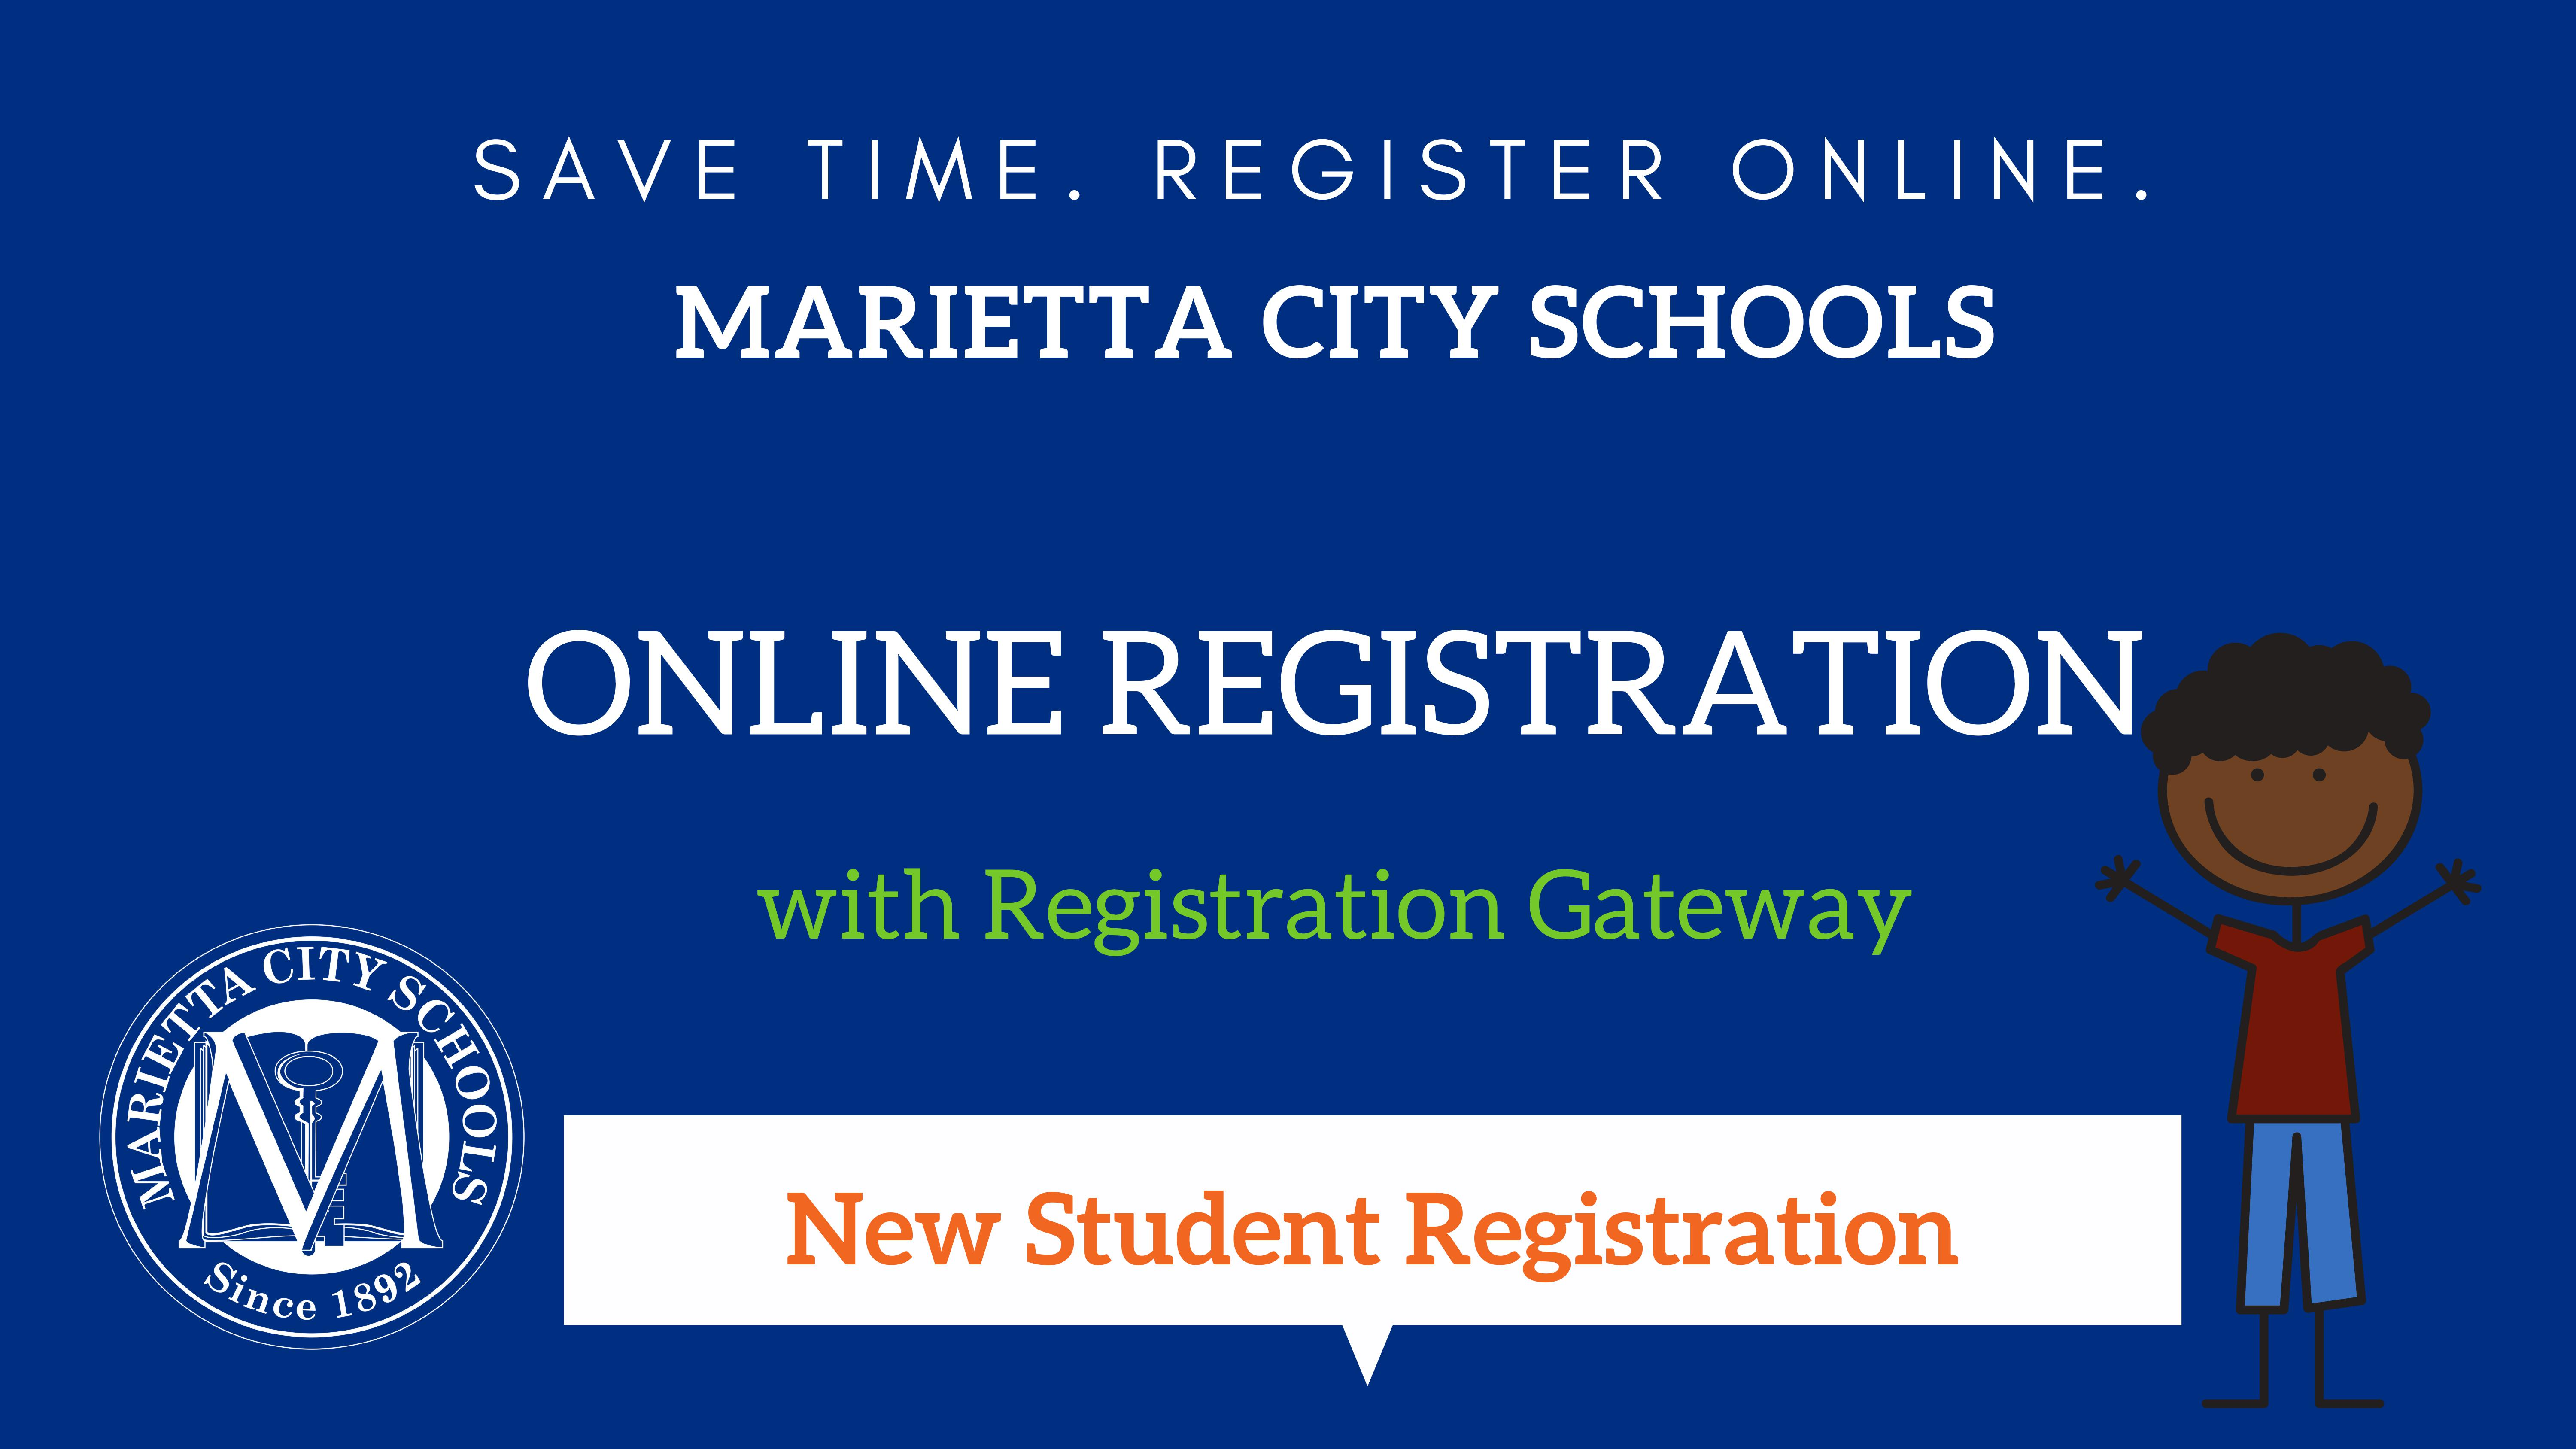 Blue graphic with text about registration and animated drawings of a student